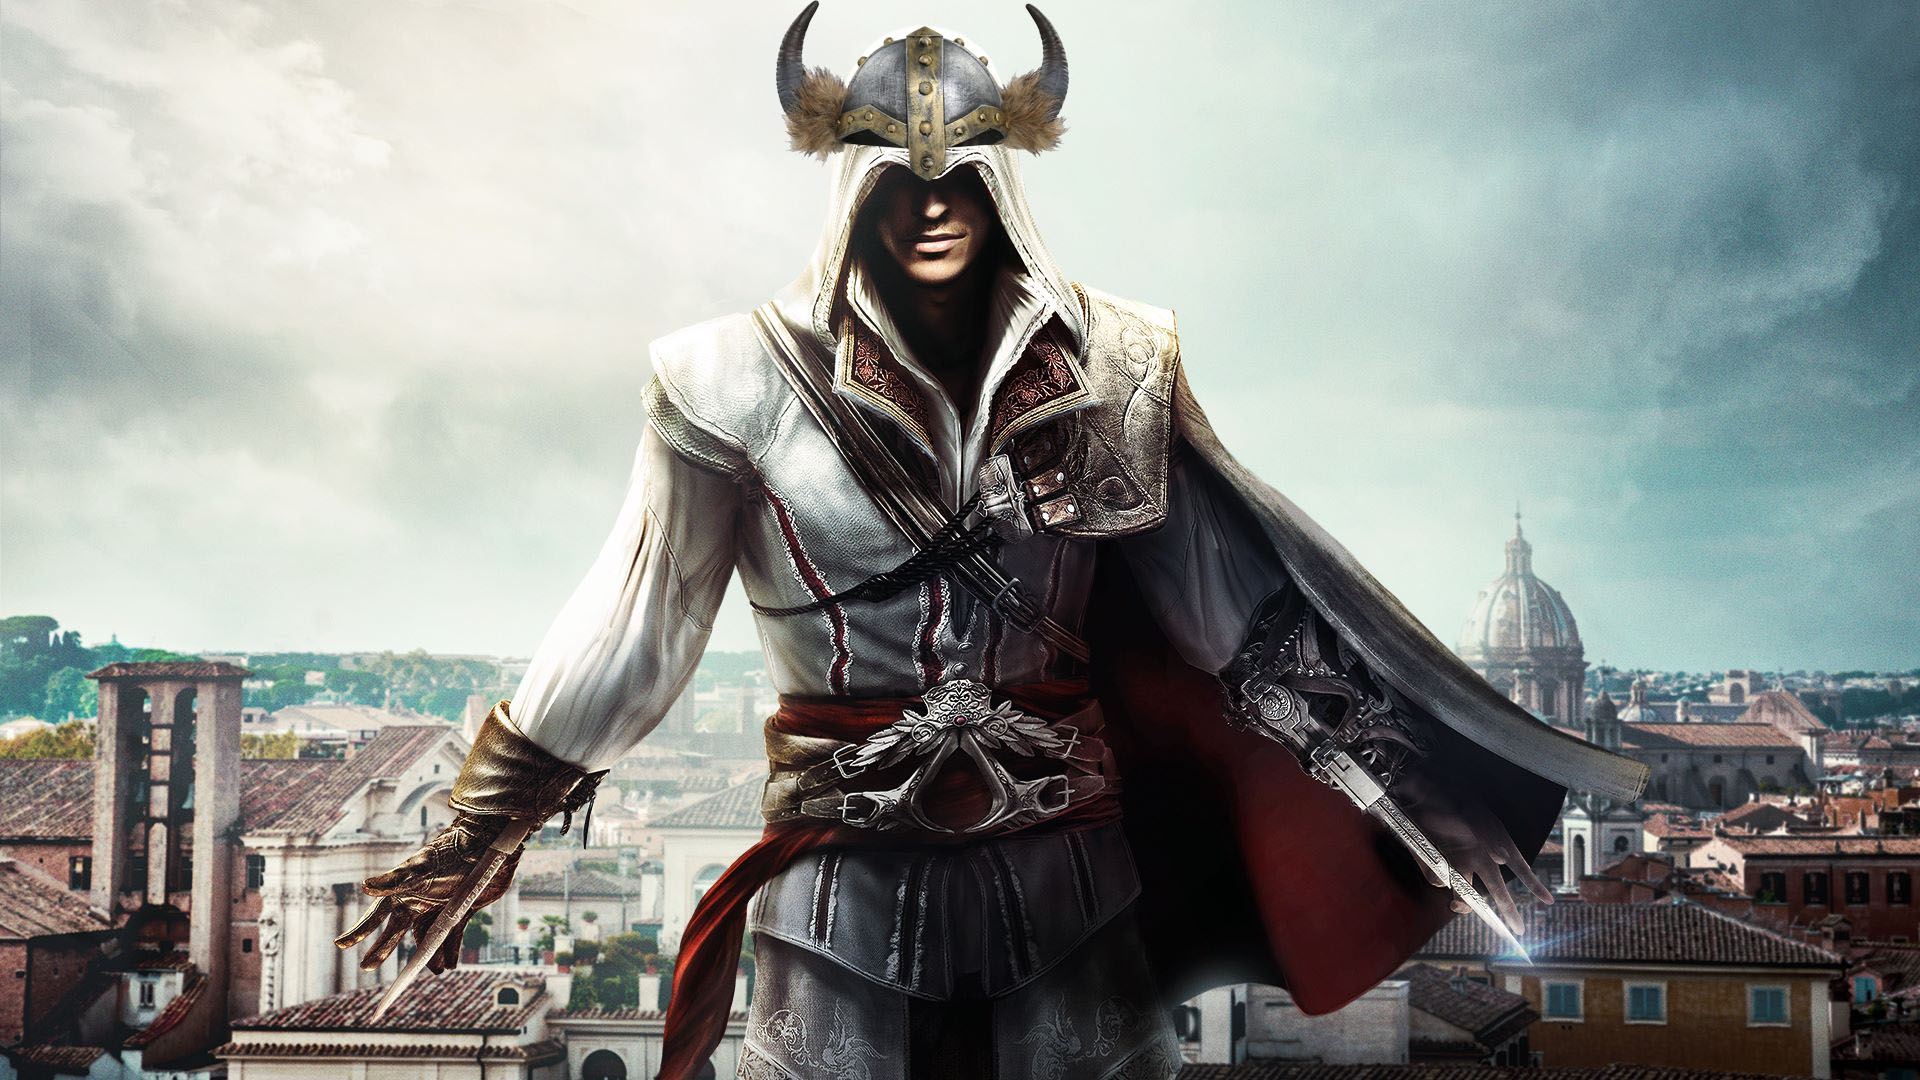 Assassin's Creed rumours point to a Viking game next